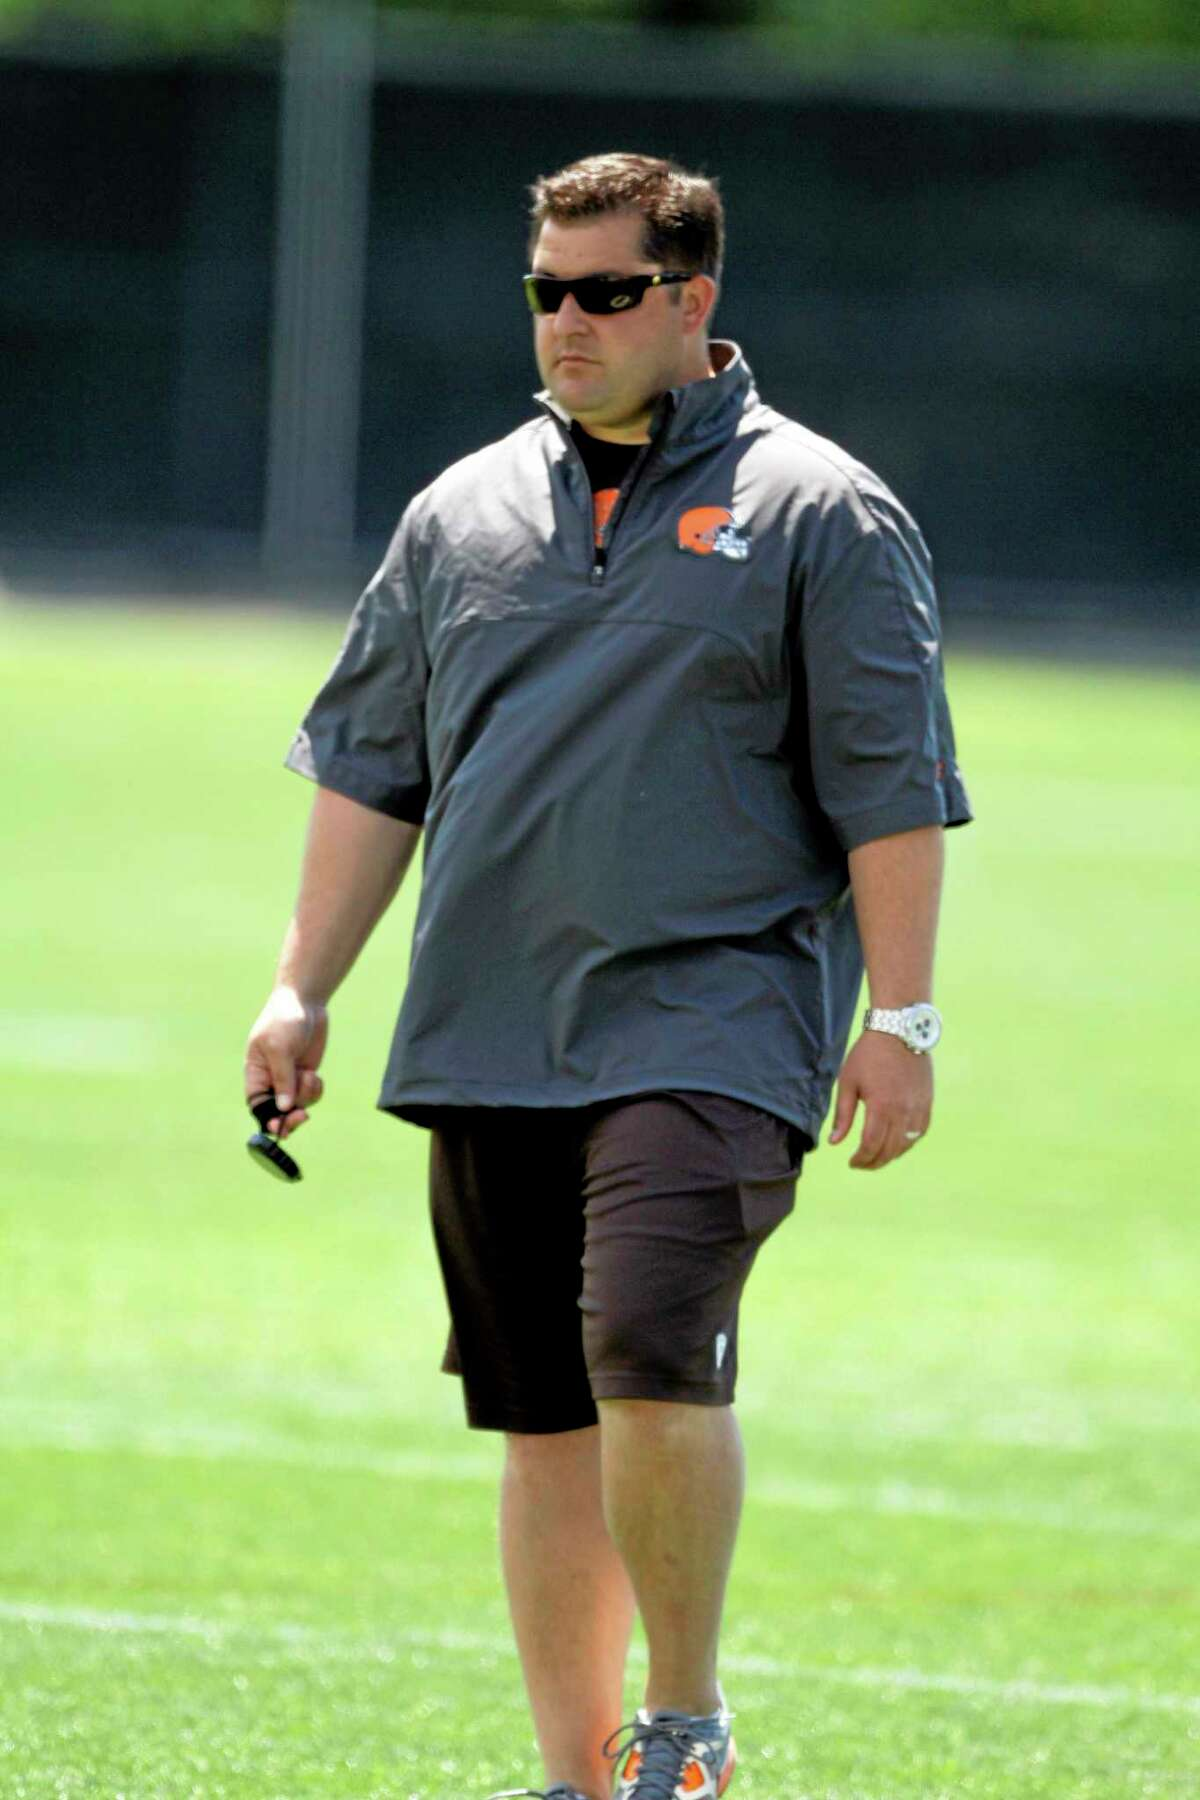 In this June 7, 2012 photo, Cleveland Browns director of player personnel Jon Sandusky watches practice at the team's headquarters in Berea, Ohio. Jon Sandusky, the son of former Penn State assistant coach Jerry Sandusky, was arrested early Tuesday morning on suspicion of drunken driving. Fargo, N.D. police Lt. Joel Vettel told The Forum of Fargo-Moorhead that an officer spotted Jon Sandusky, 36, making an illegal turn. The officer pulled Sandusky over and decided he was driving under the influence after administering field sobriety tests.